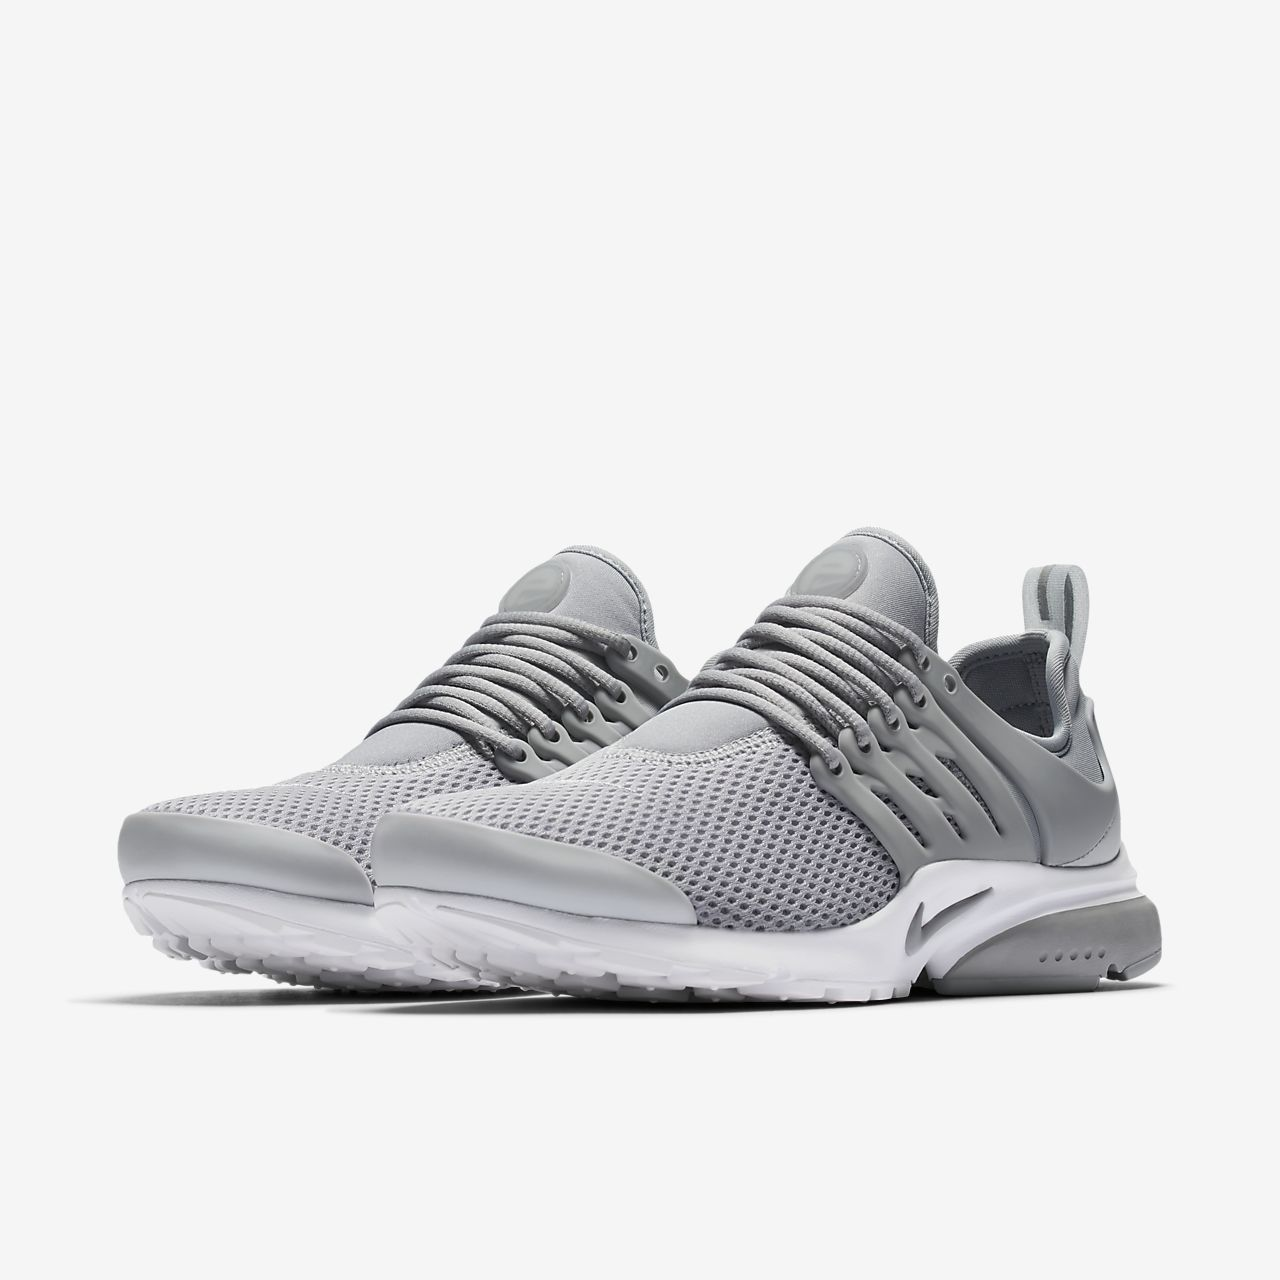 a898d19aed78 Nike Air Presto Women s Shoe - gray -  120 - Nike.com